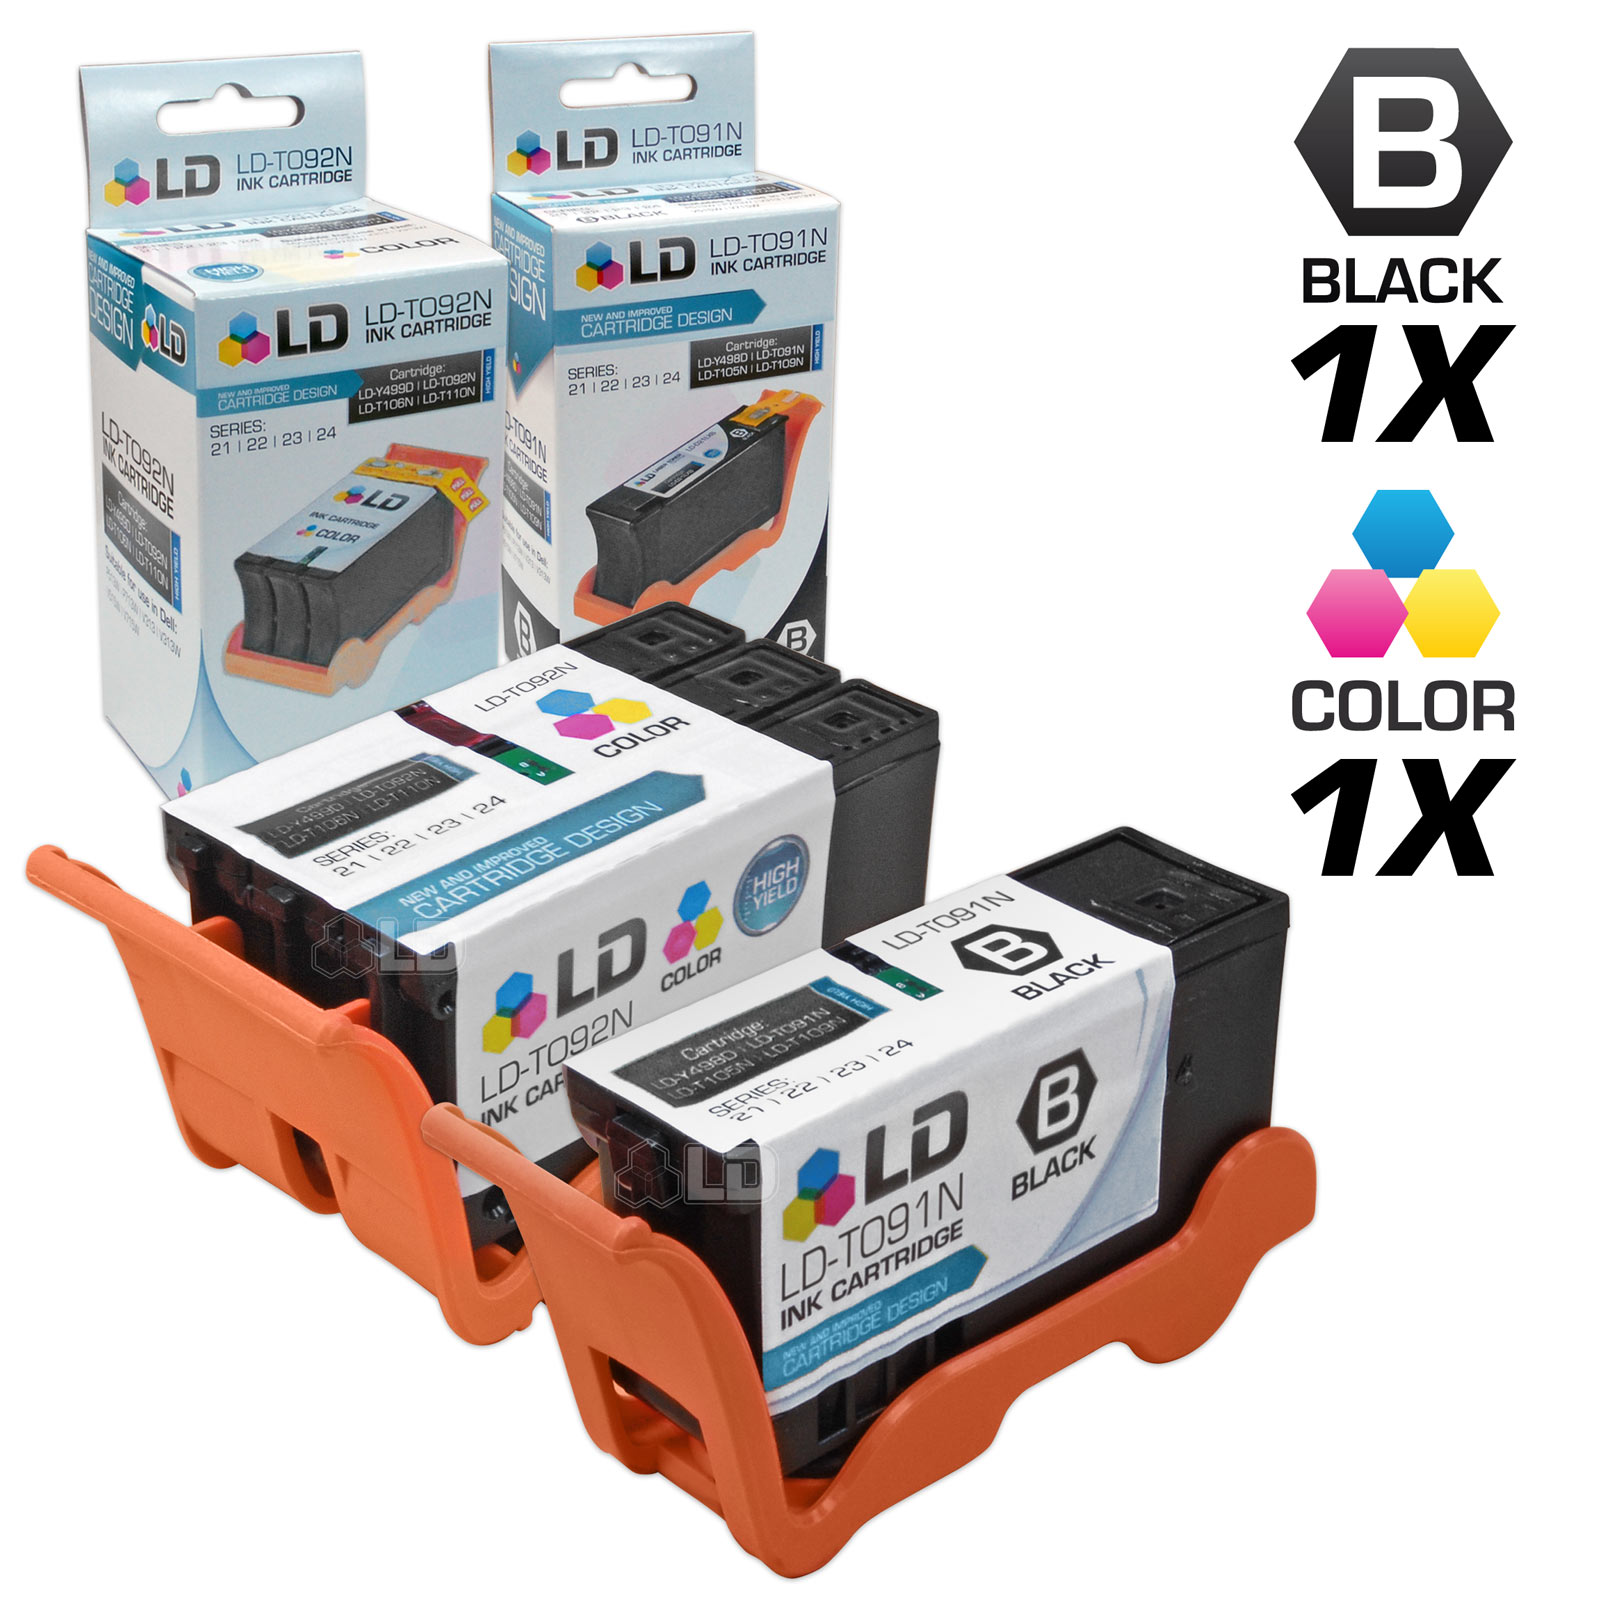 LD Compatible Dell Series 22 Set of 2 High Yield Black & Color Ink Cartridges for the Dell P513w, V313, V313w Printers: